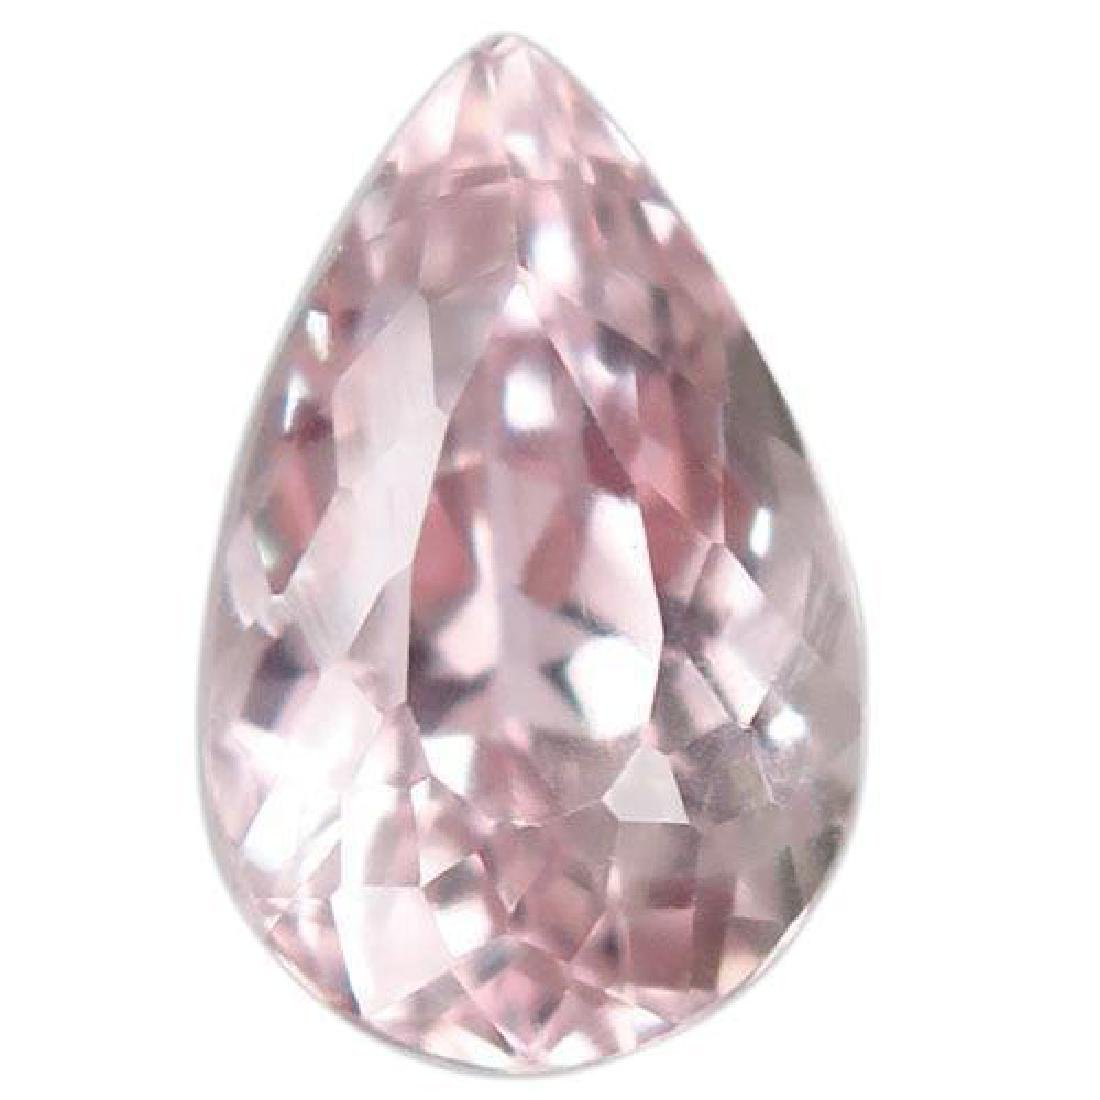 7.22ct. Pear Faceted Natural Unheated Brazilian Silver